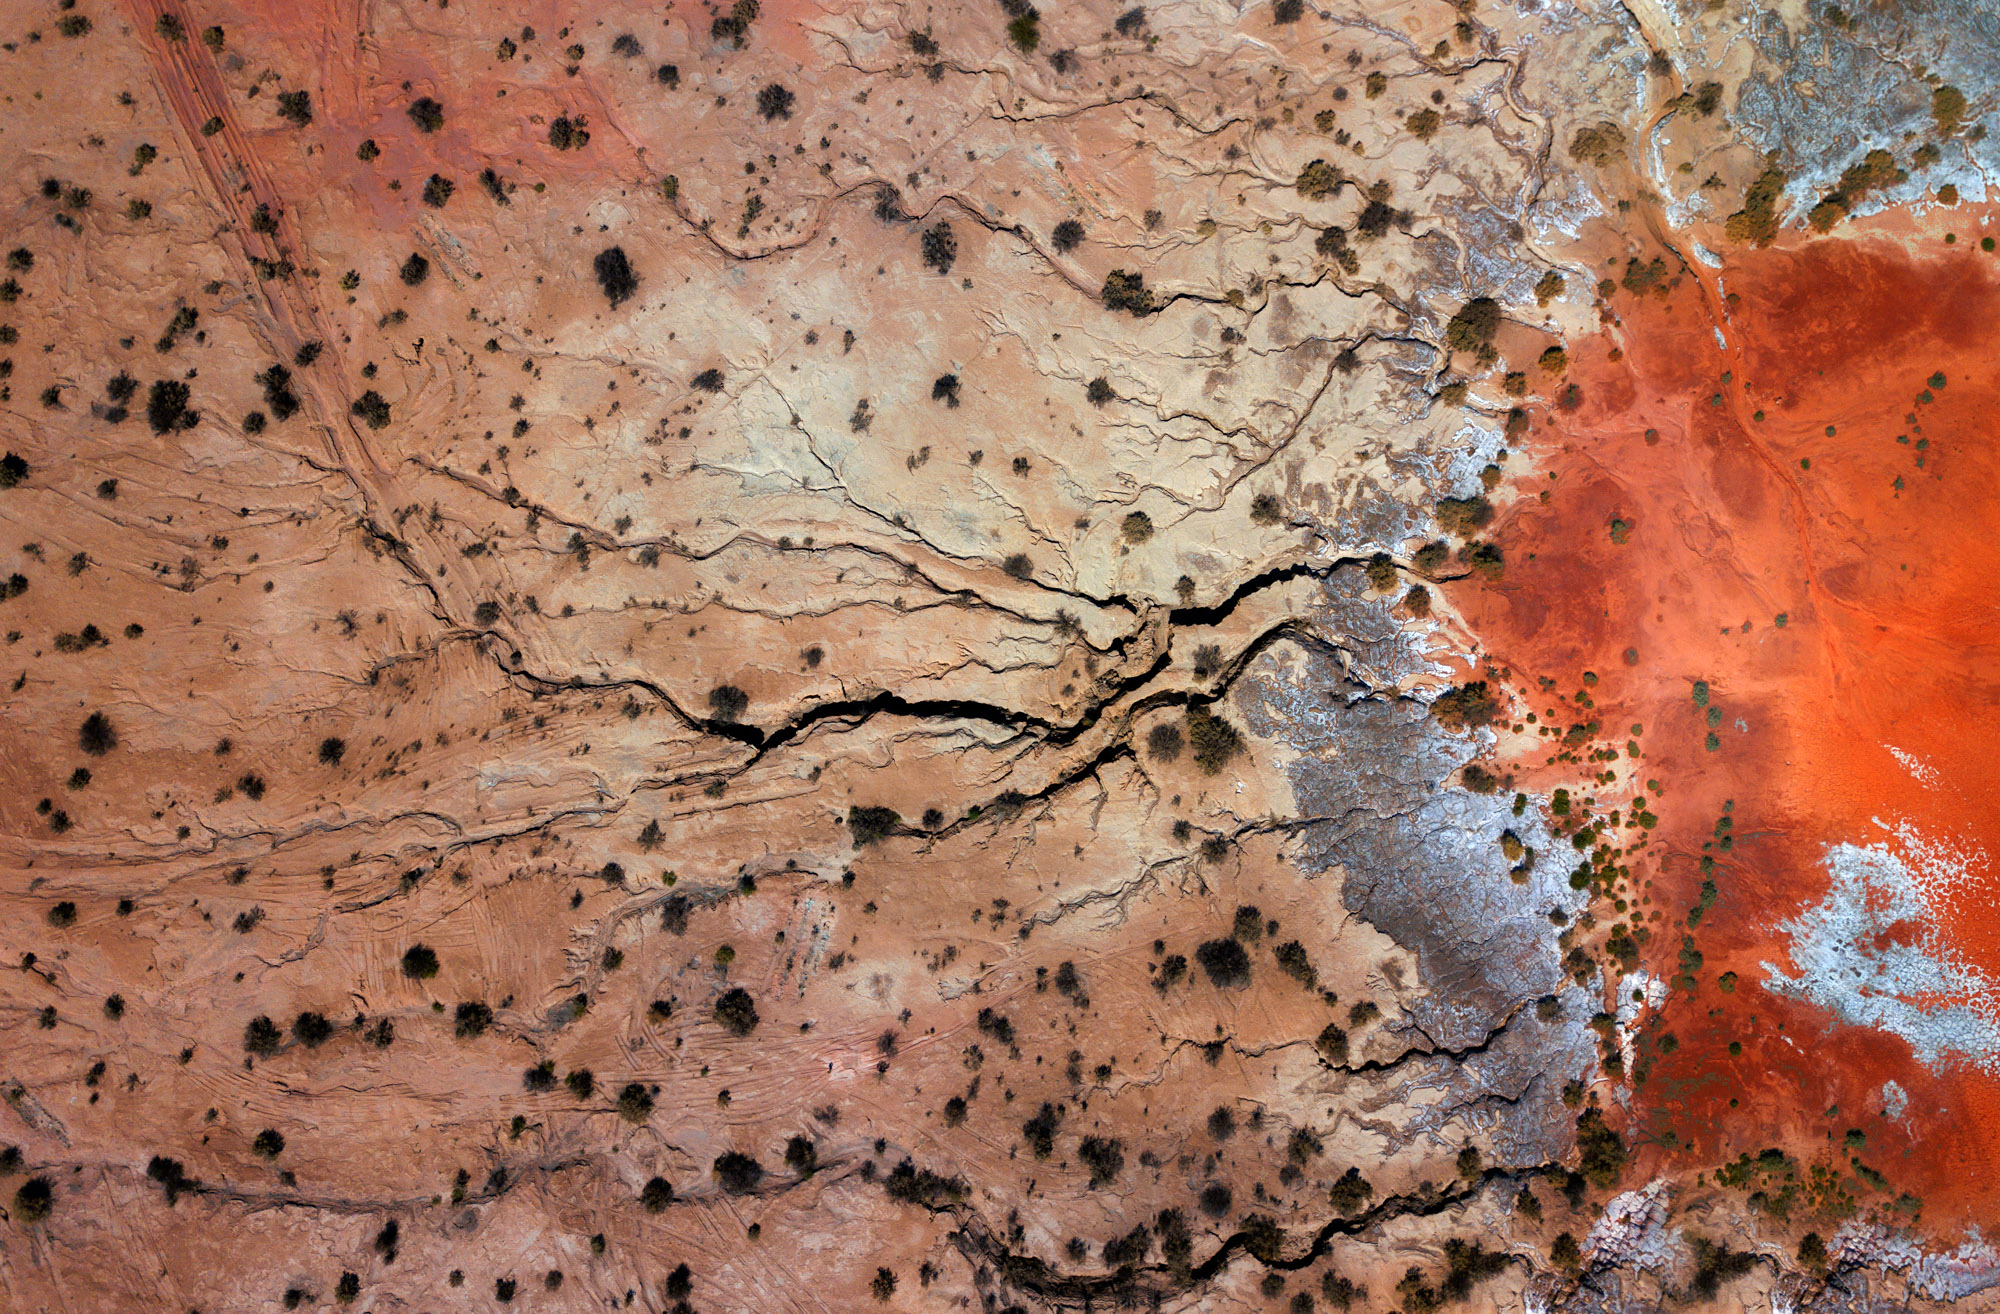 A disused tailings dam in Western Australia's Goldfields looks like a wound on the landscape when photographed from above